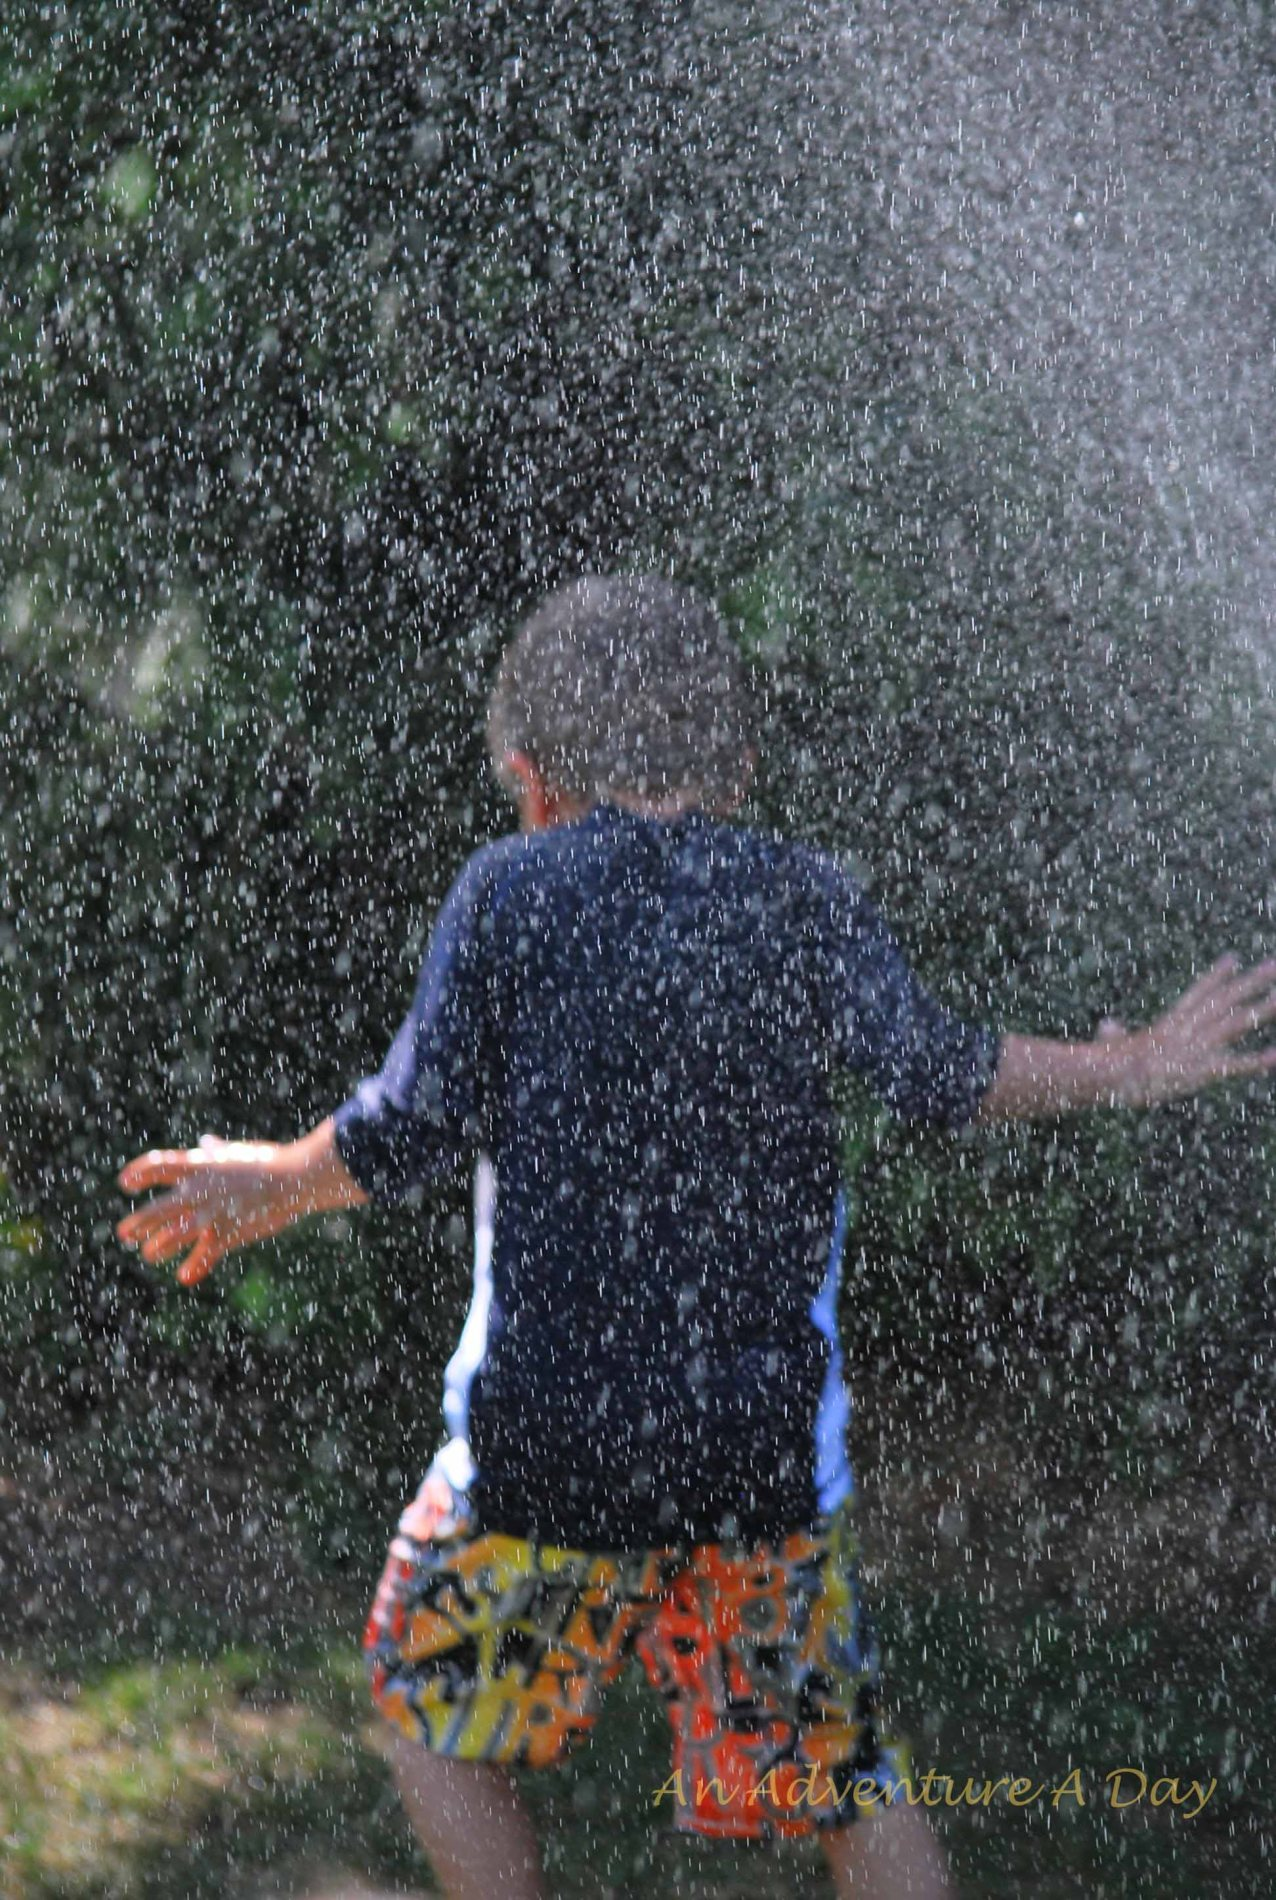 Temperatures were unseasonably warm, but the kids kept cool!